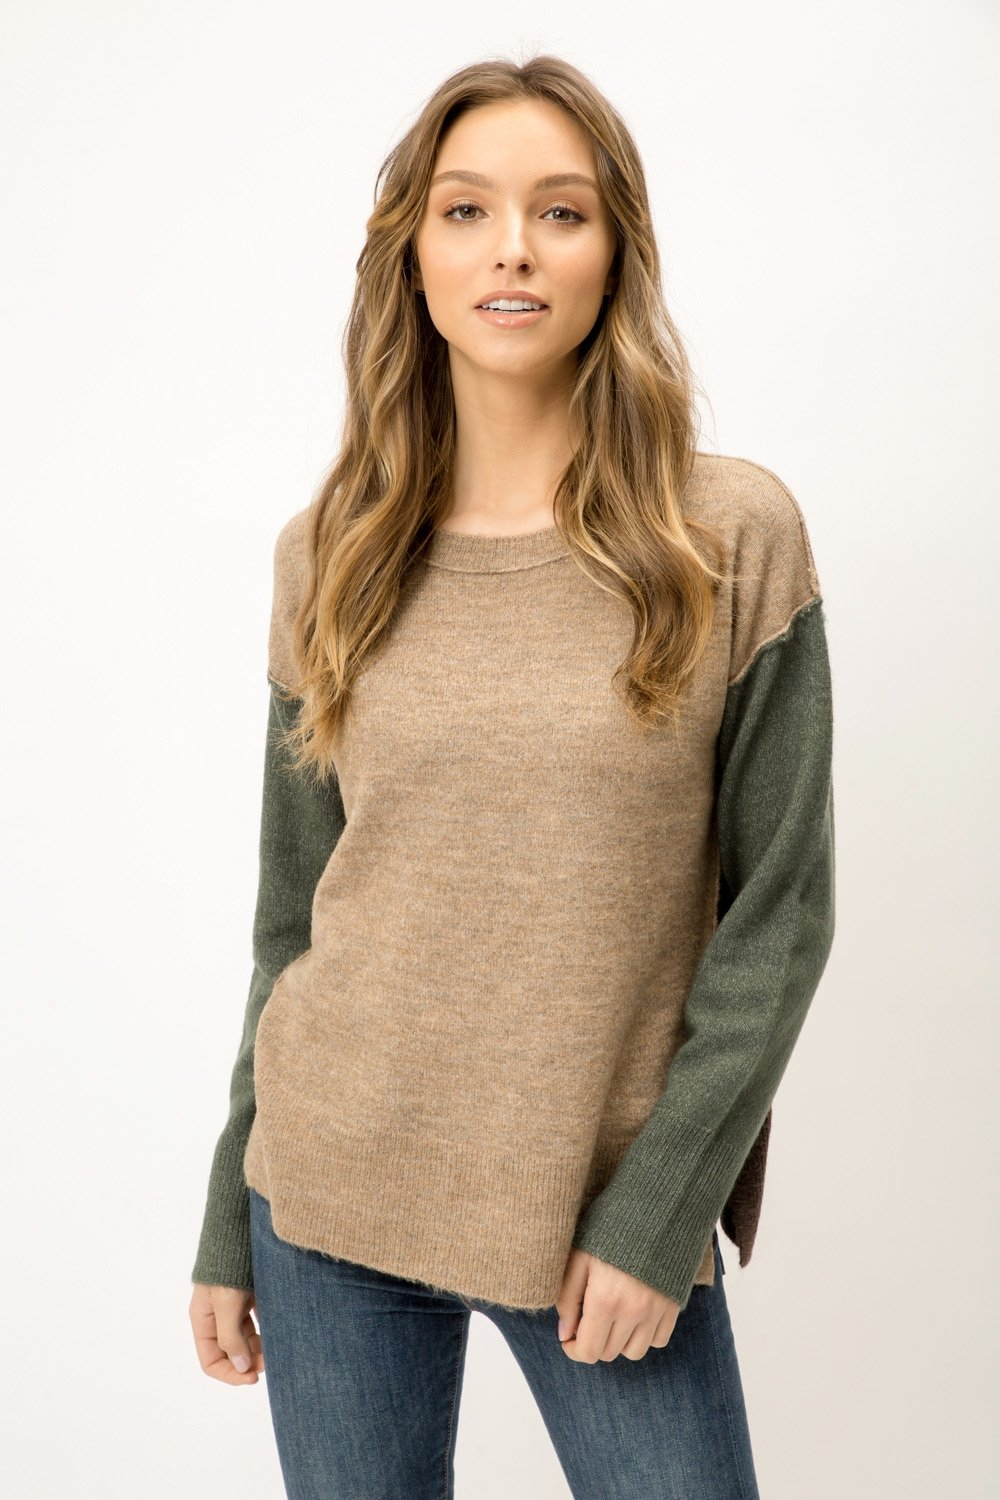 Color Block Sweater from Mystree